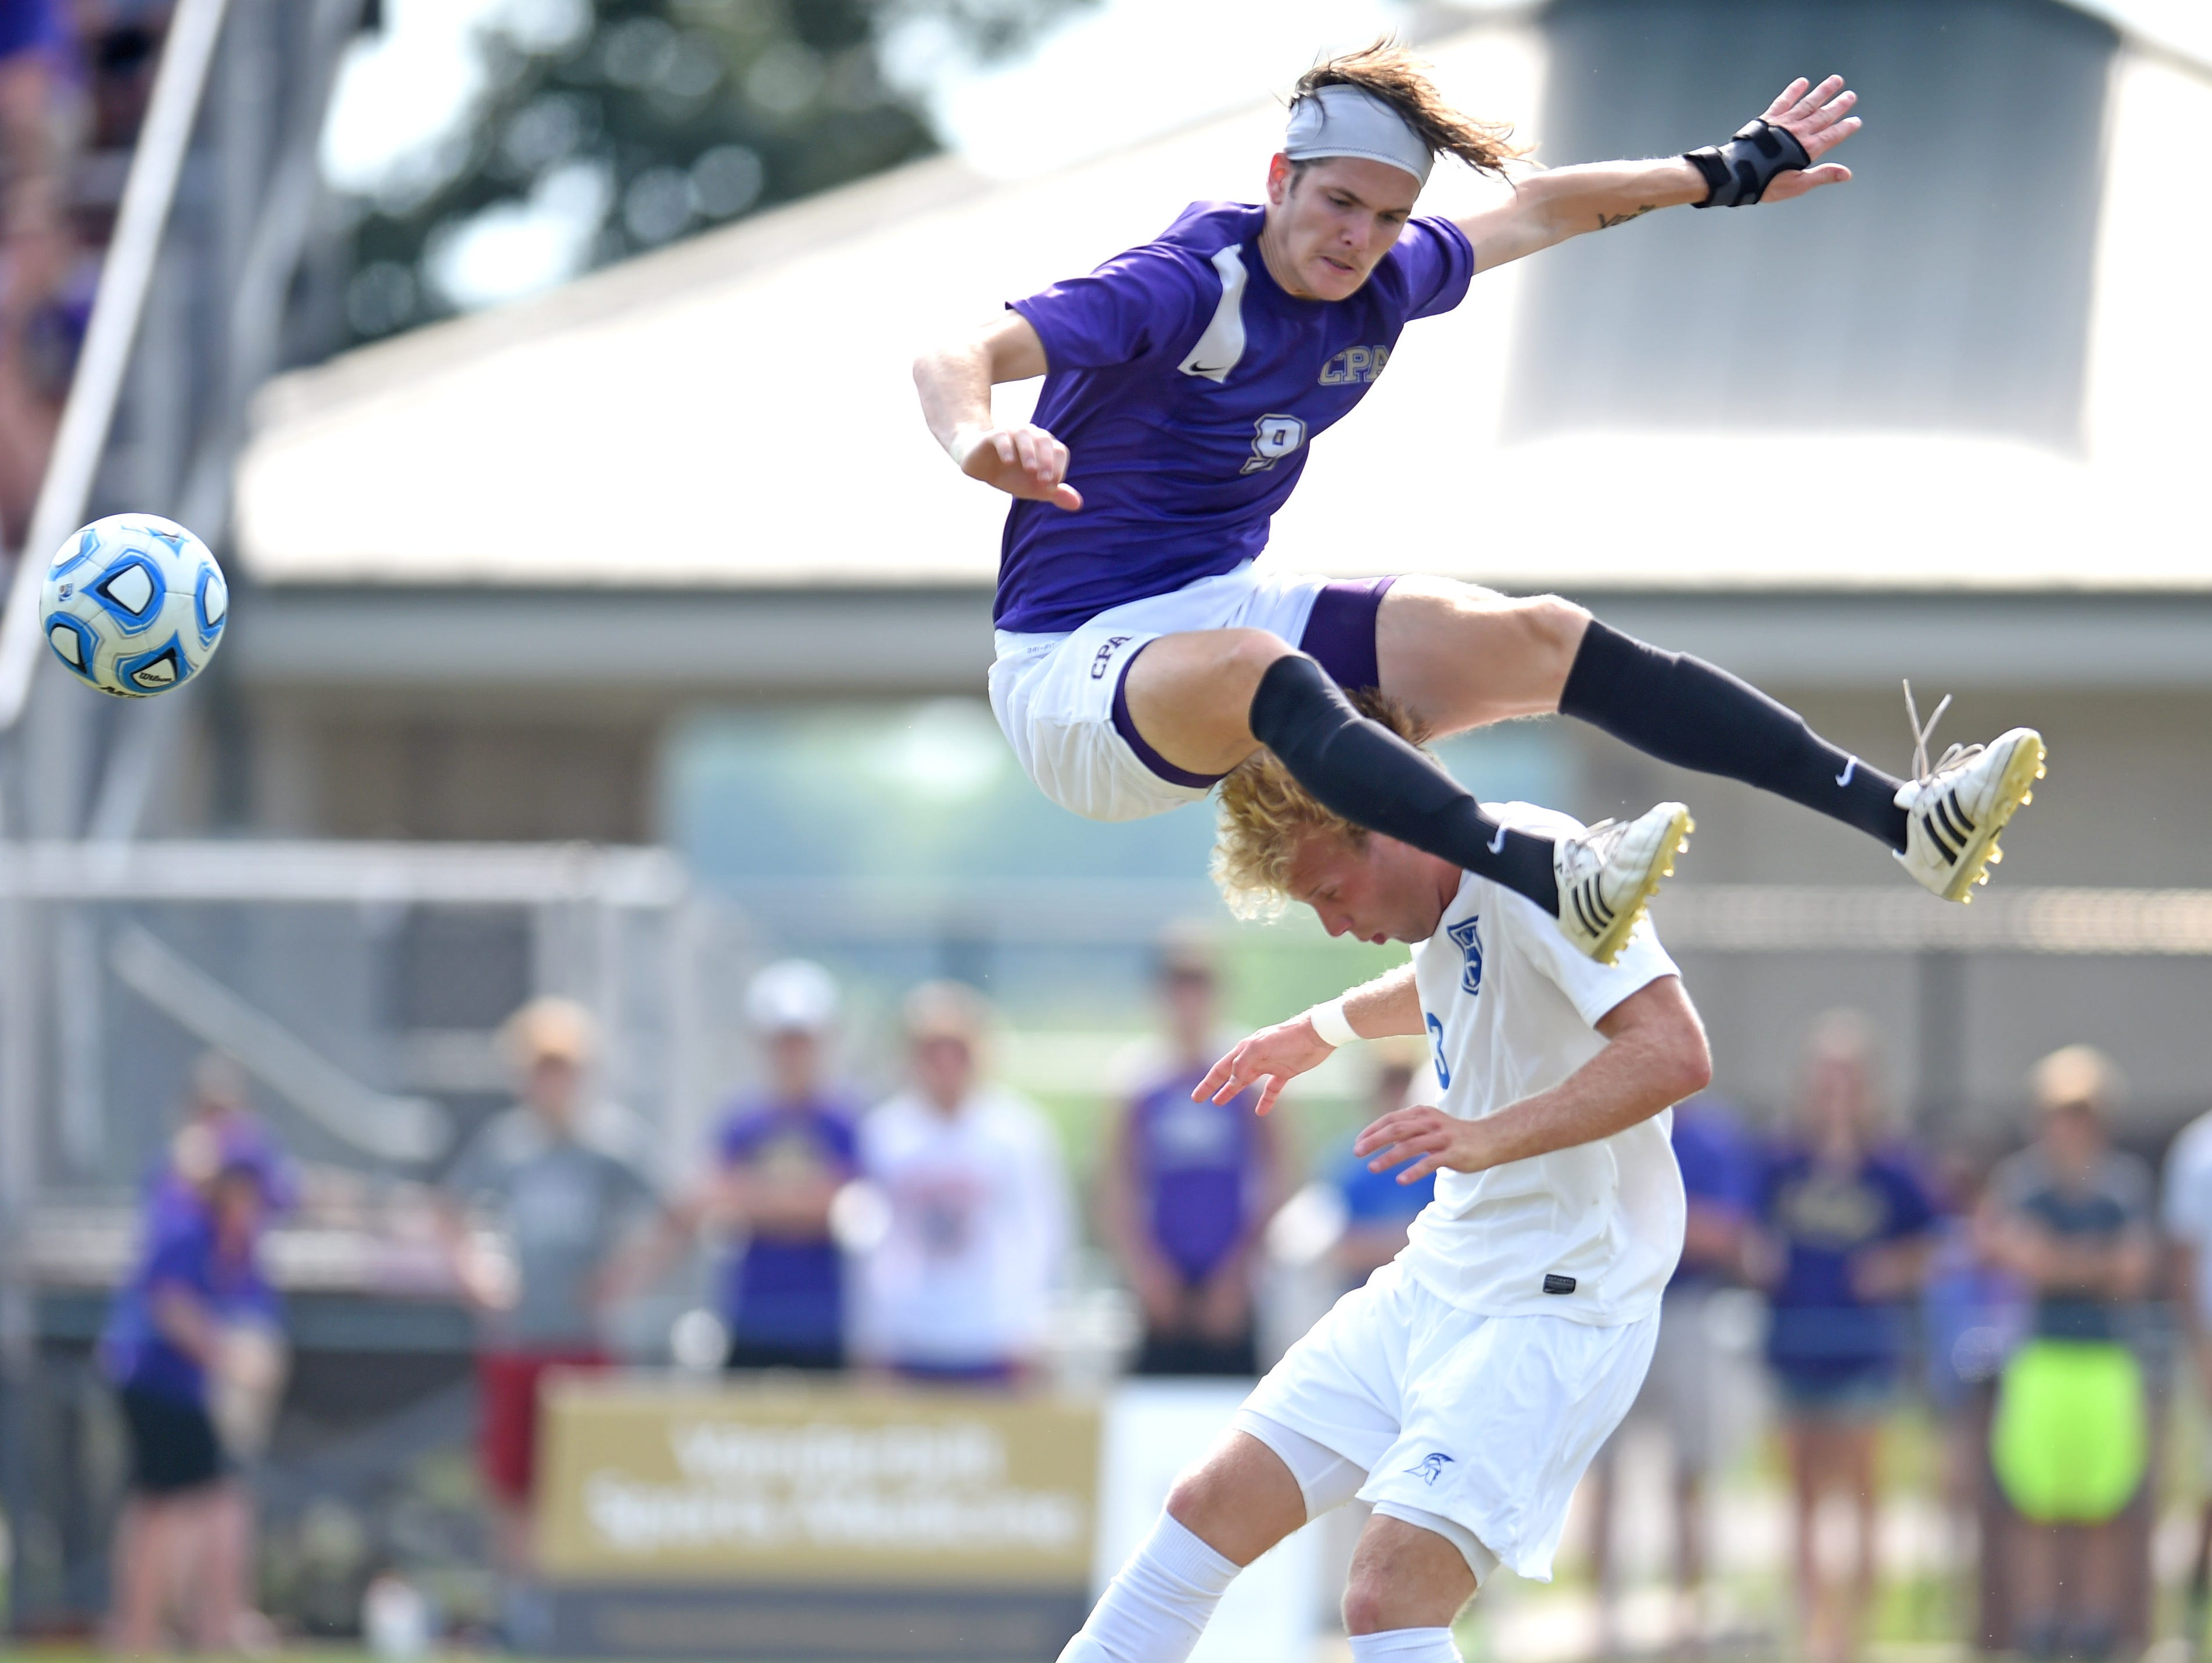 CPA's Price Purdue (9) leaps over CAK's Matt Zaczyk (23) while trying to head the ball in a Class A-AA state championship soccer game at Richard Siegel Soccer Complex in Murfreesboro during Spring Fling on Friday, May 27, 2016.